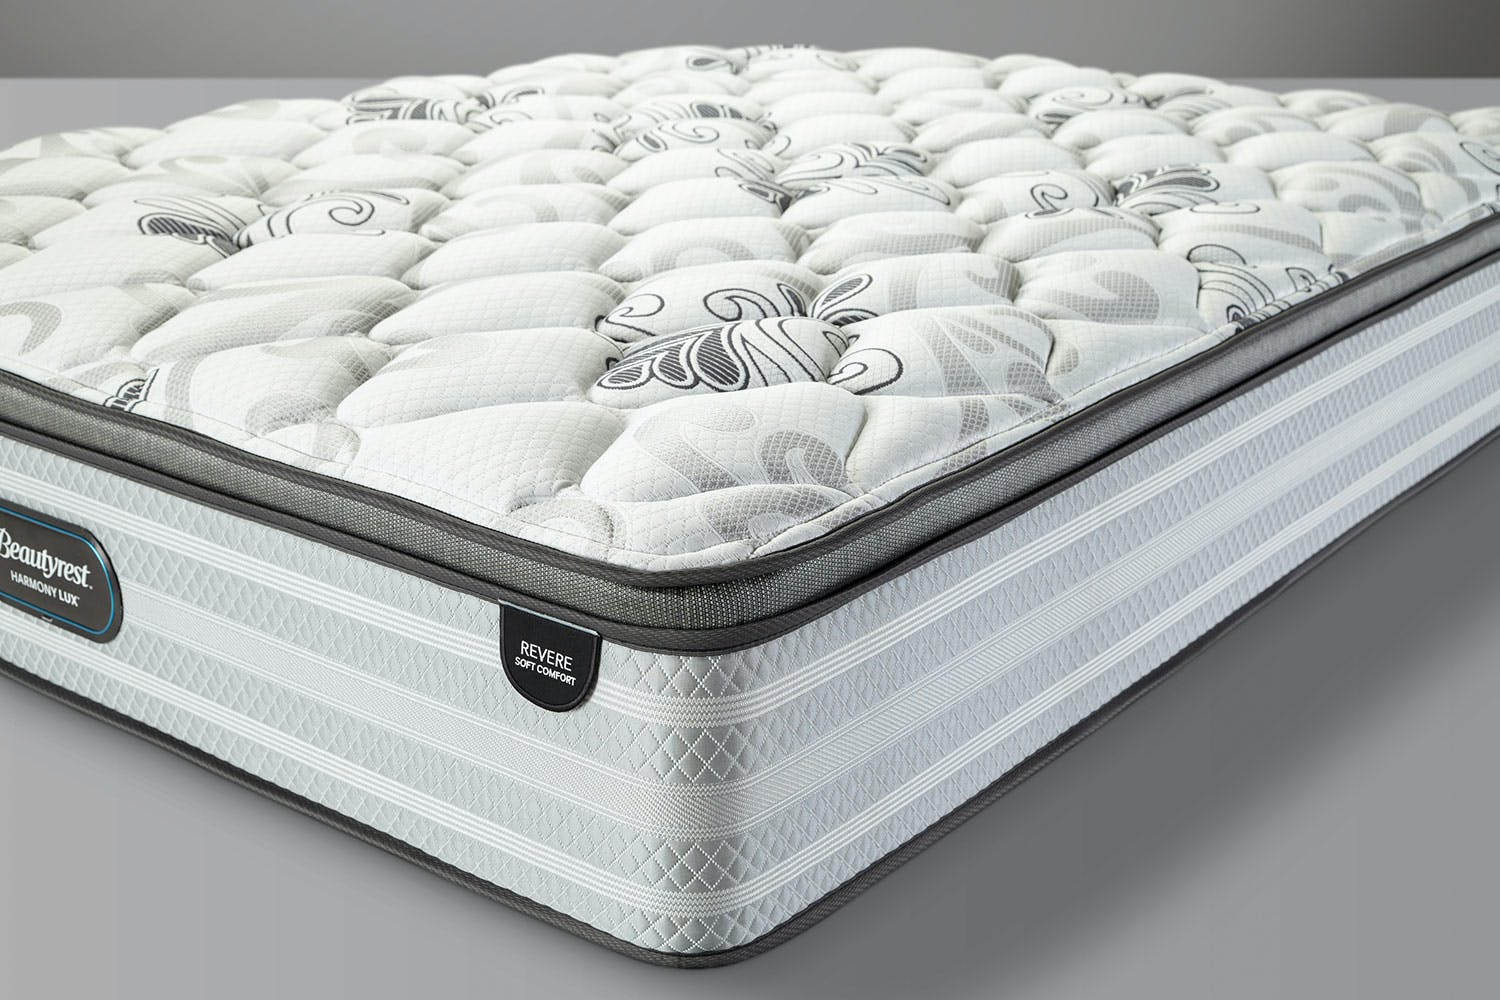 Revere Soft Super King Mattress by Beautyrest